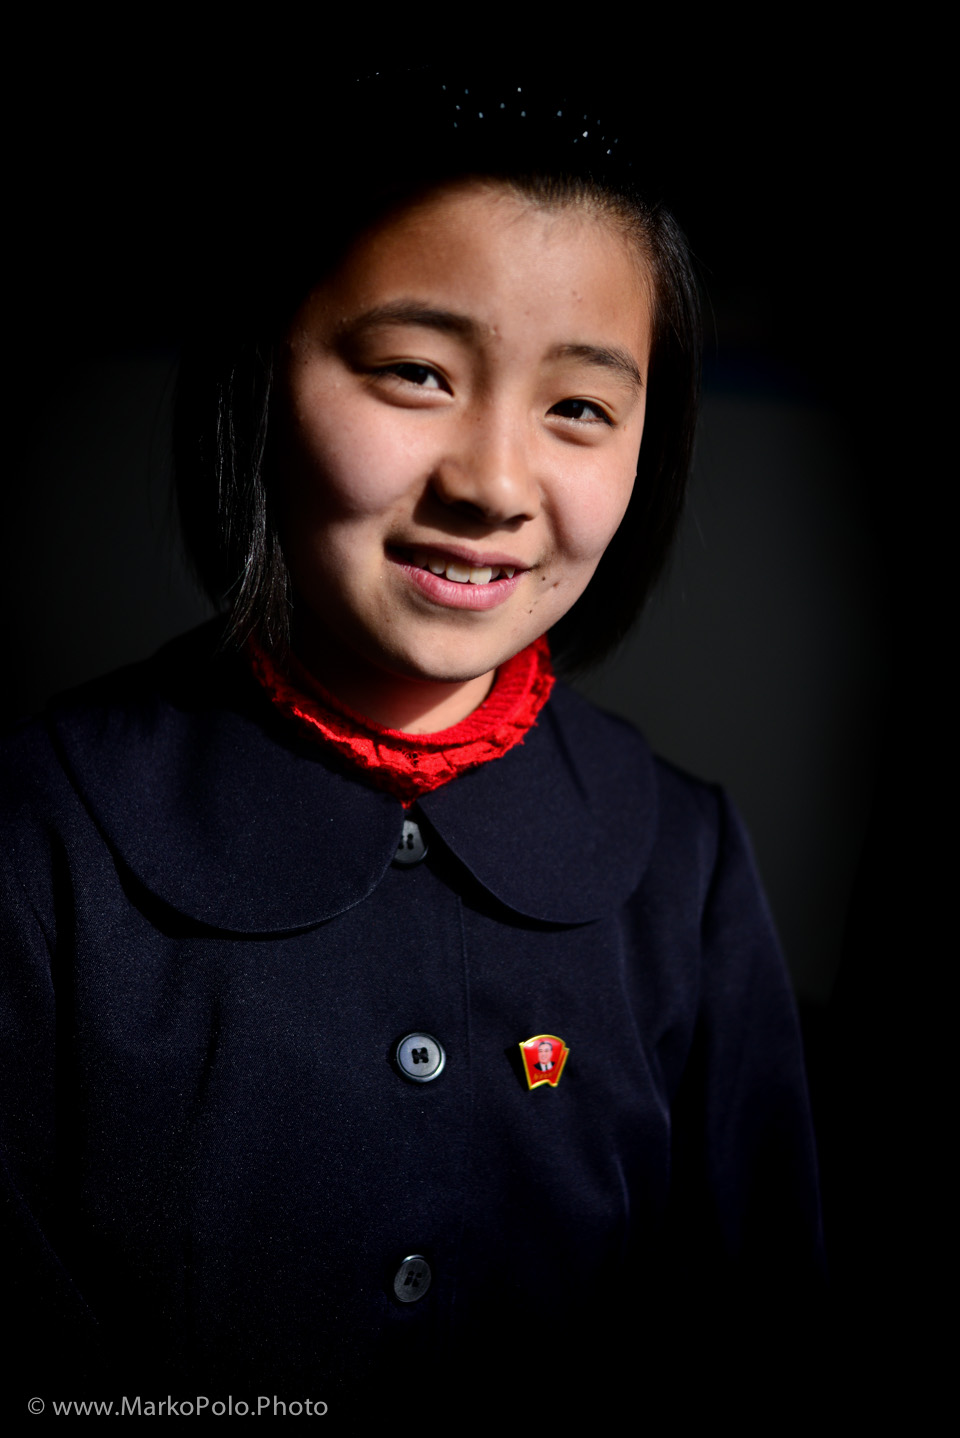 One of the girls from the class.  One of my favorite photographs from DPRK on that trip